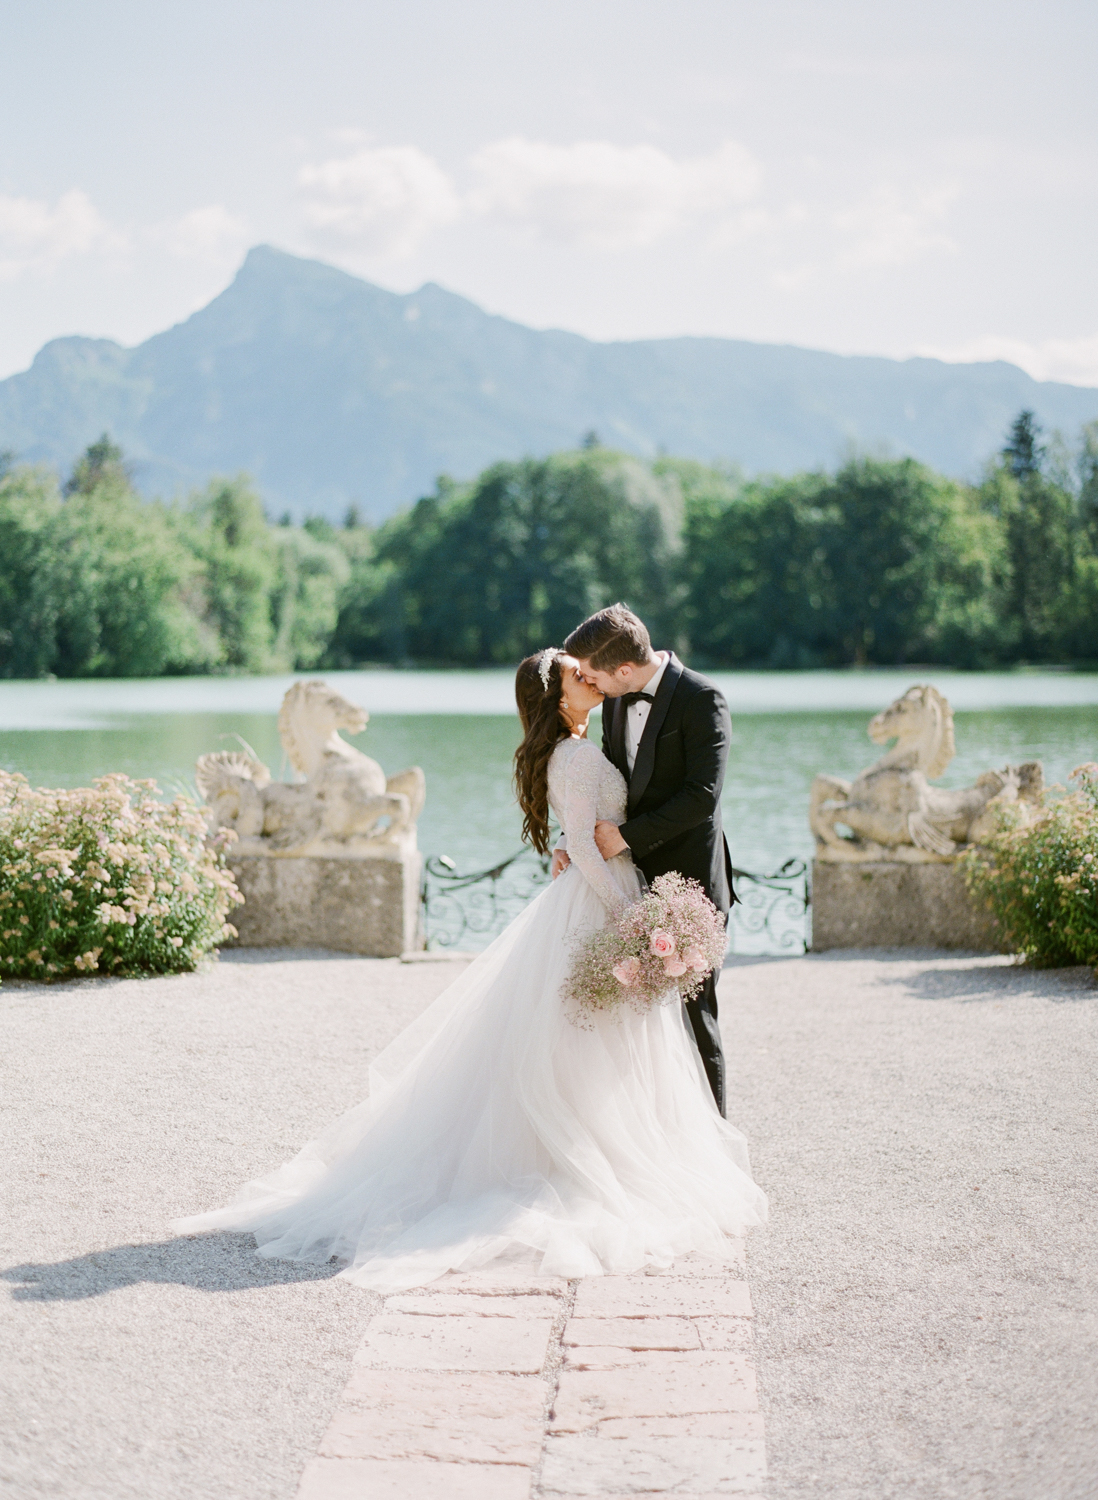 lake_como_wedding_photographer_nikol_bodnarova_139.JPG